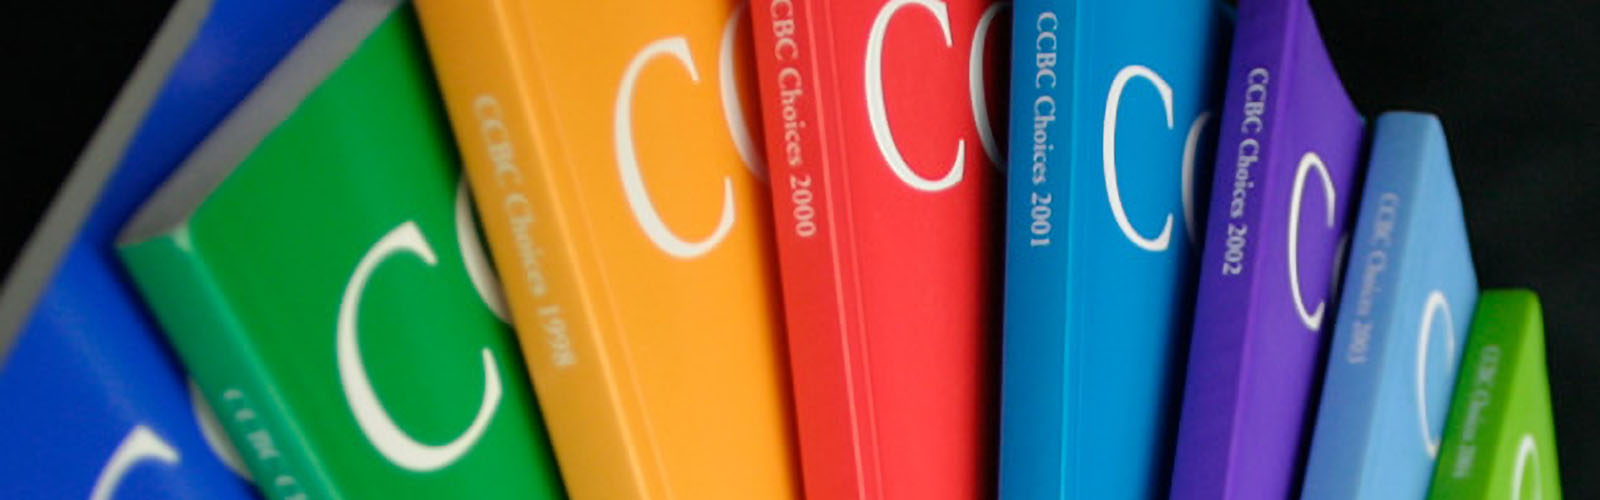 CCBC Choices Books